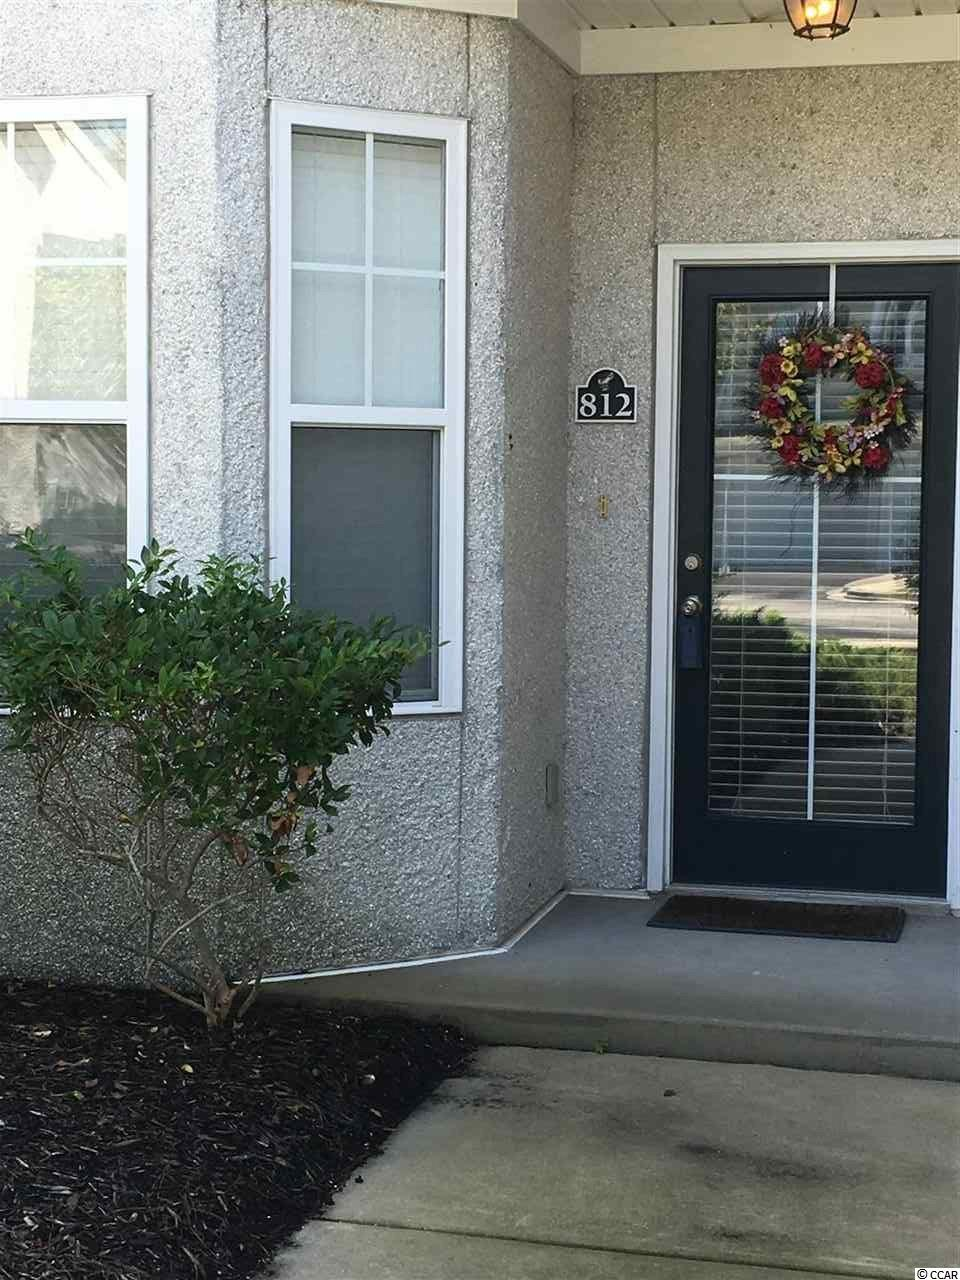 Woodlands condo for sale in North Myrtle Beach, SC